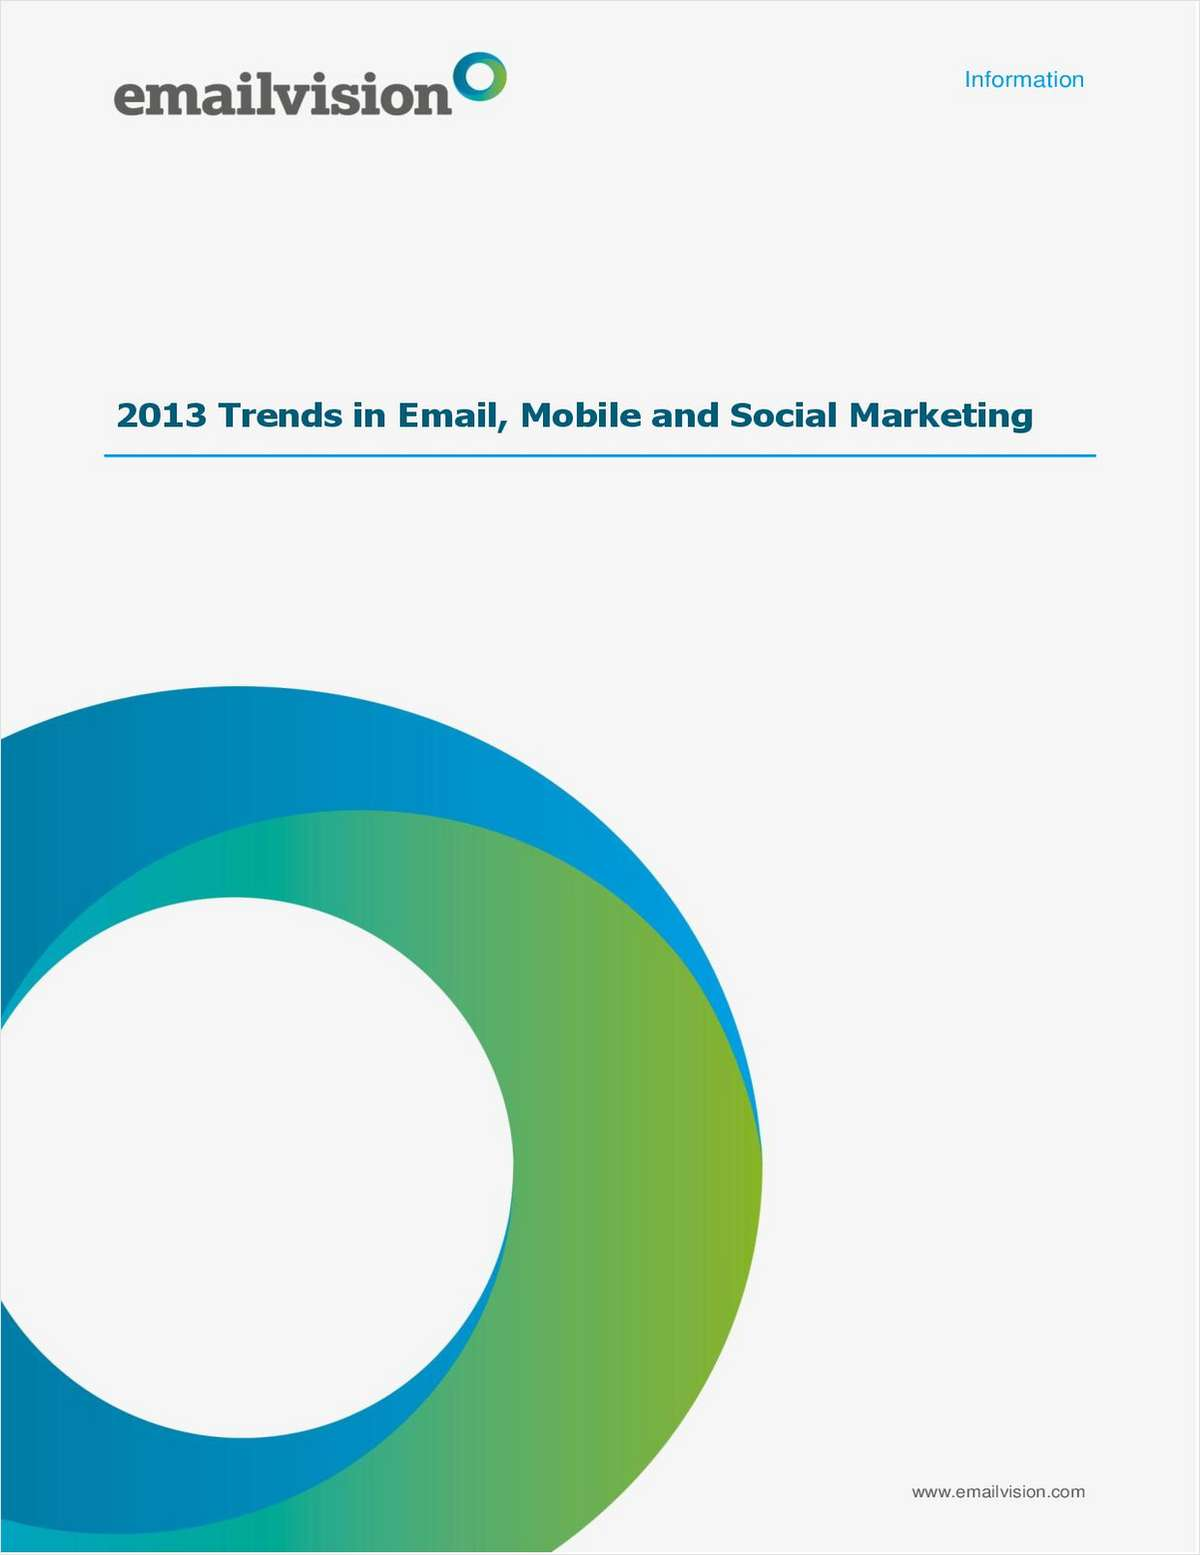 Top 10 Trends in Email, Mobile & Social Marketing